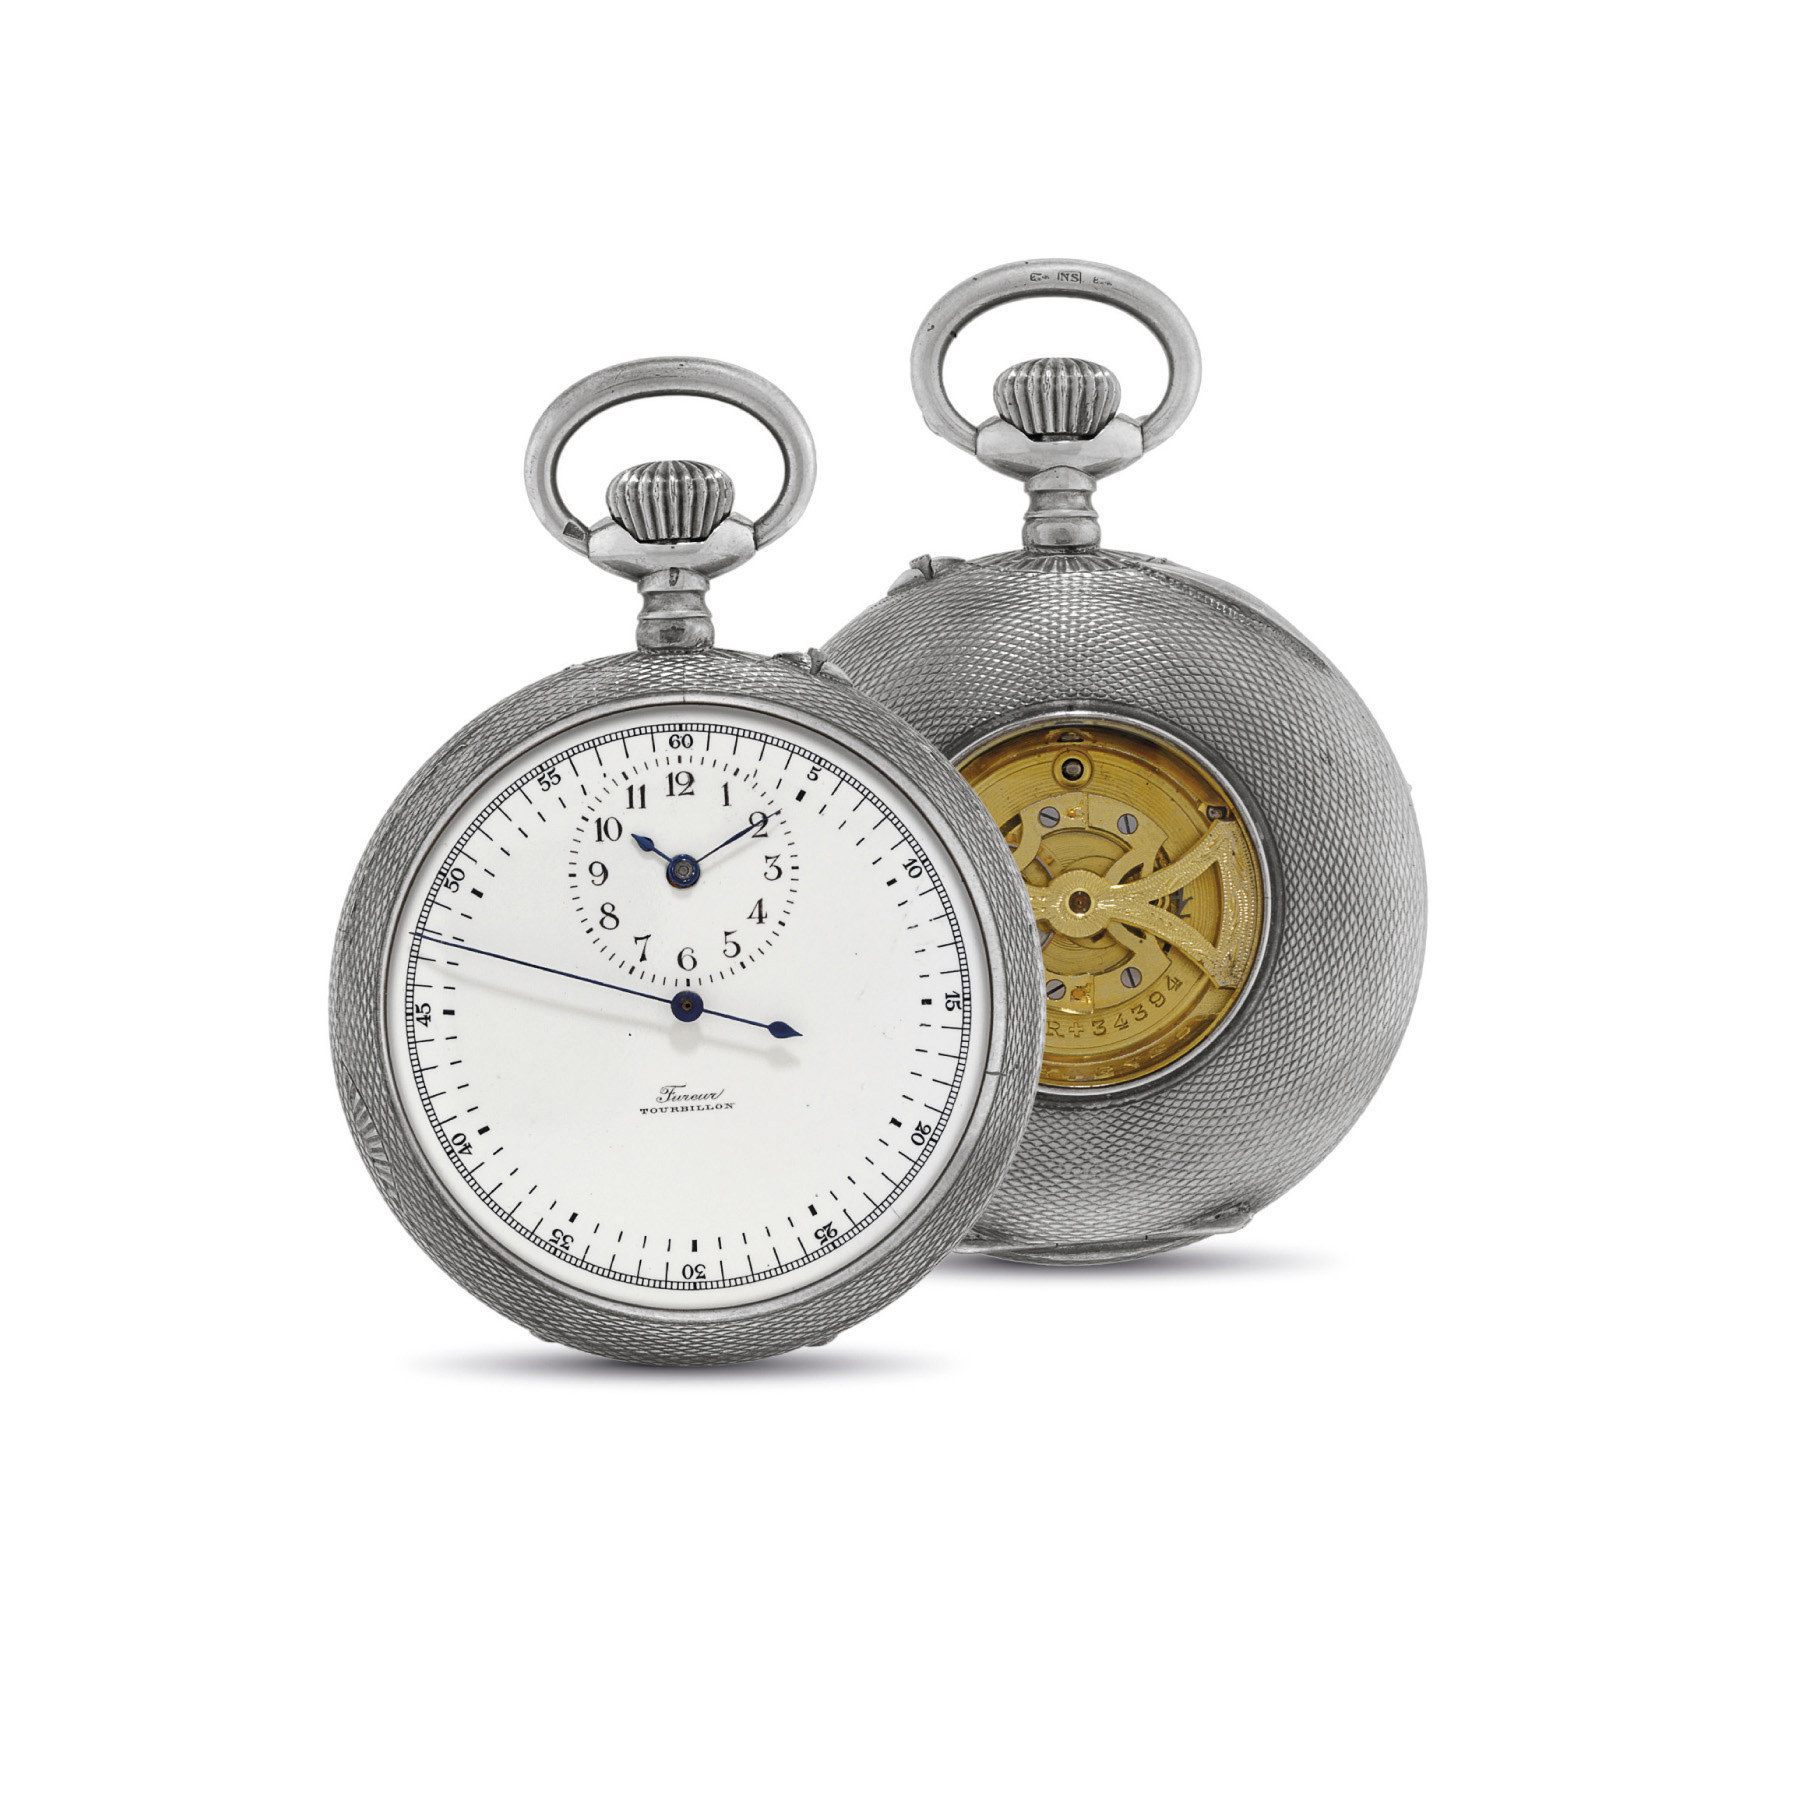 FUREUR. AN UNUSUAL AND RARE SILVER OPENFACE TOURBILLON KEYLESS LEVER WATCH WITH REGULATOR STYLE DIAL AND CENTRE SECONDS